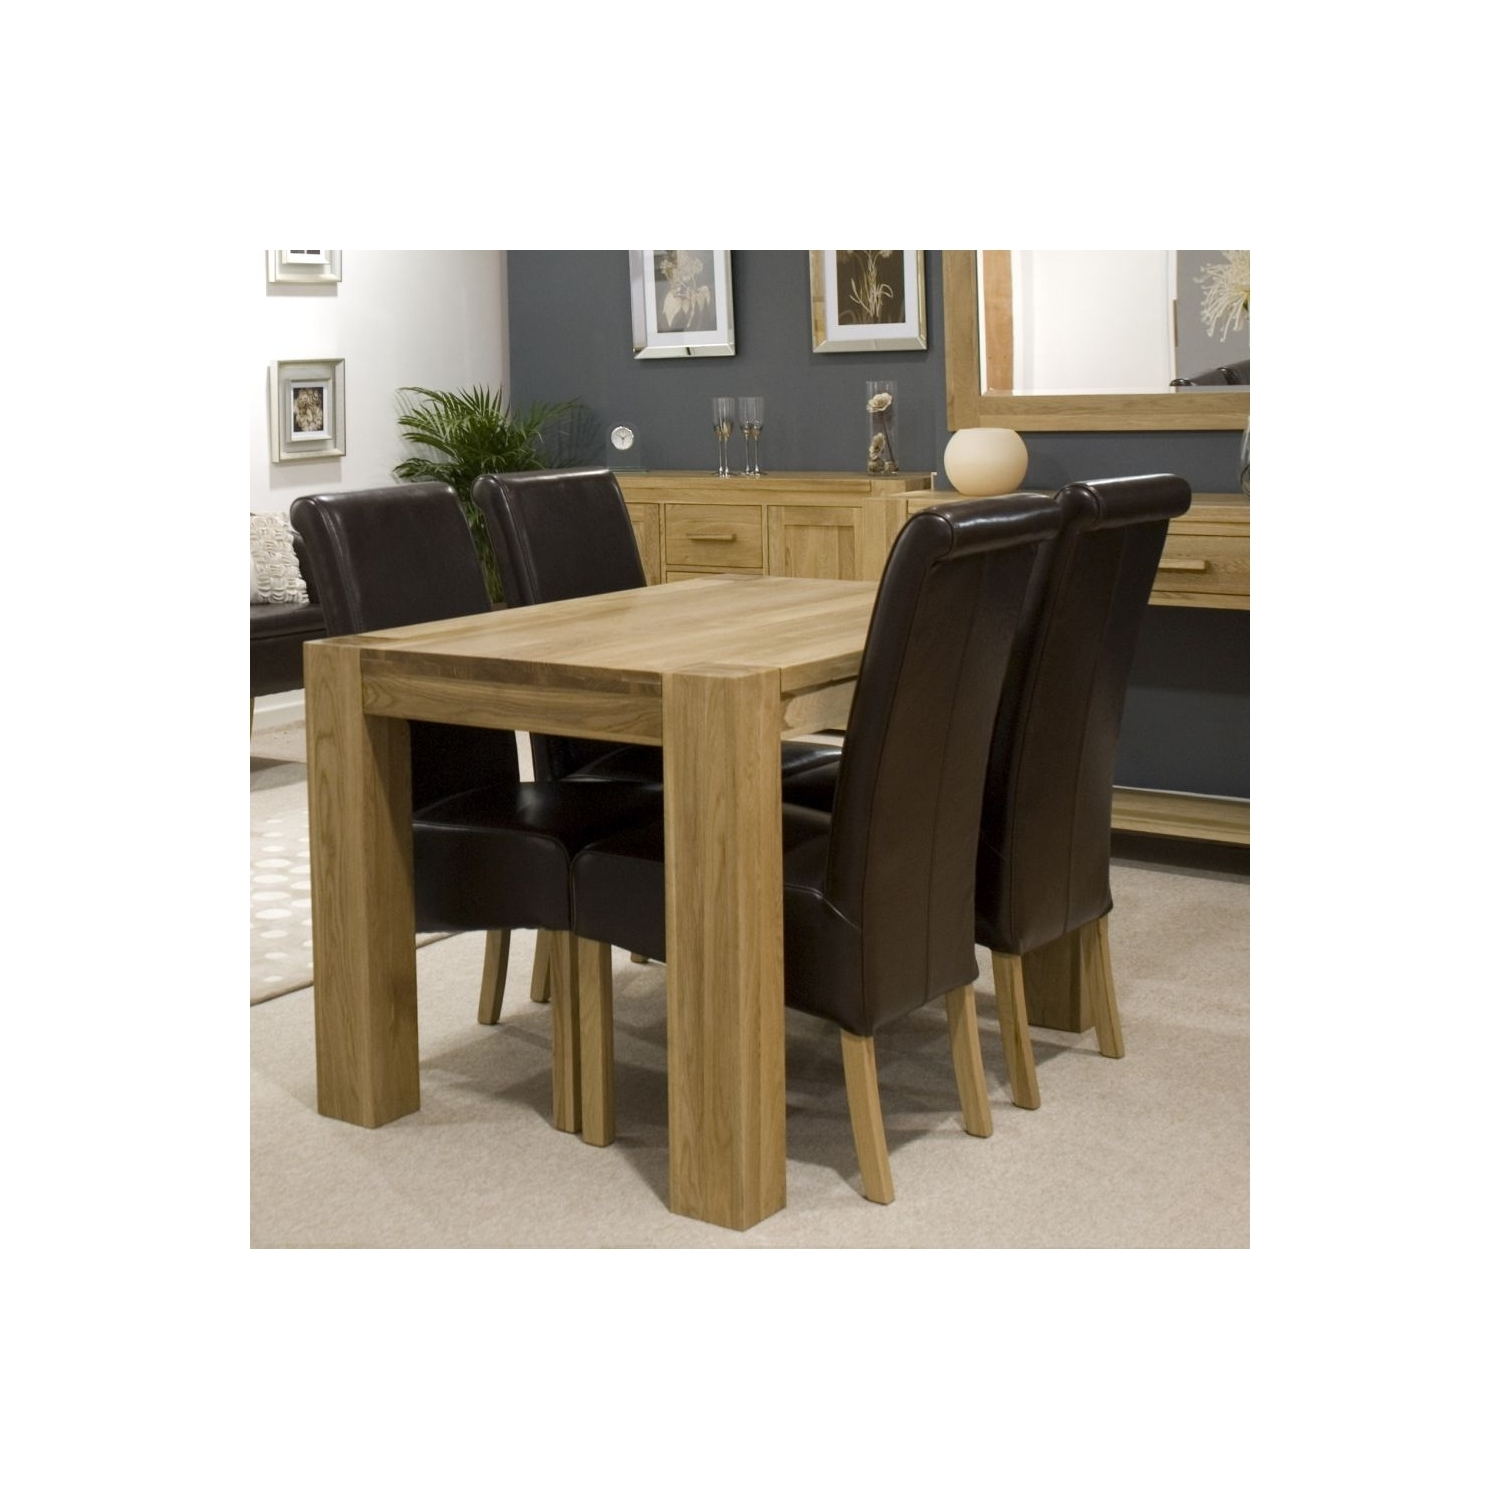 Pemberton Solid Oak Furniture Dining Table With Four Brown Leather Intended For Preferred Oak Furniture Dining Sets (View 13 of 25)